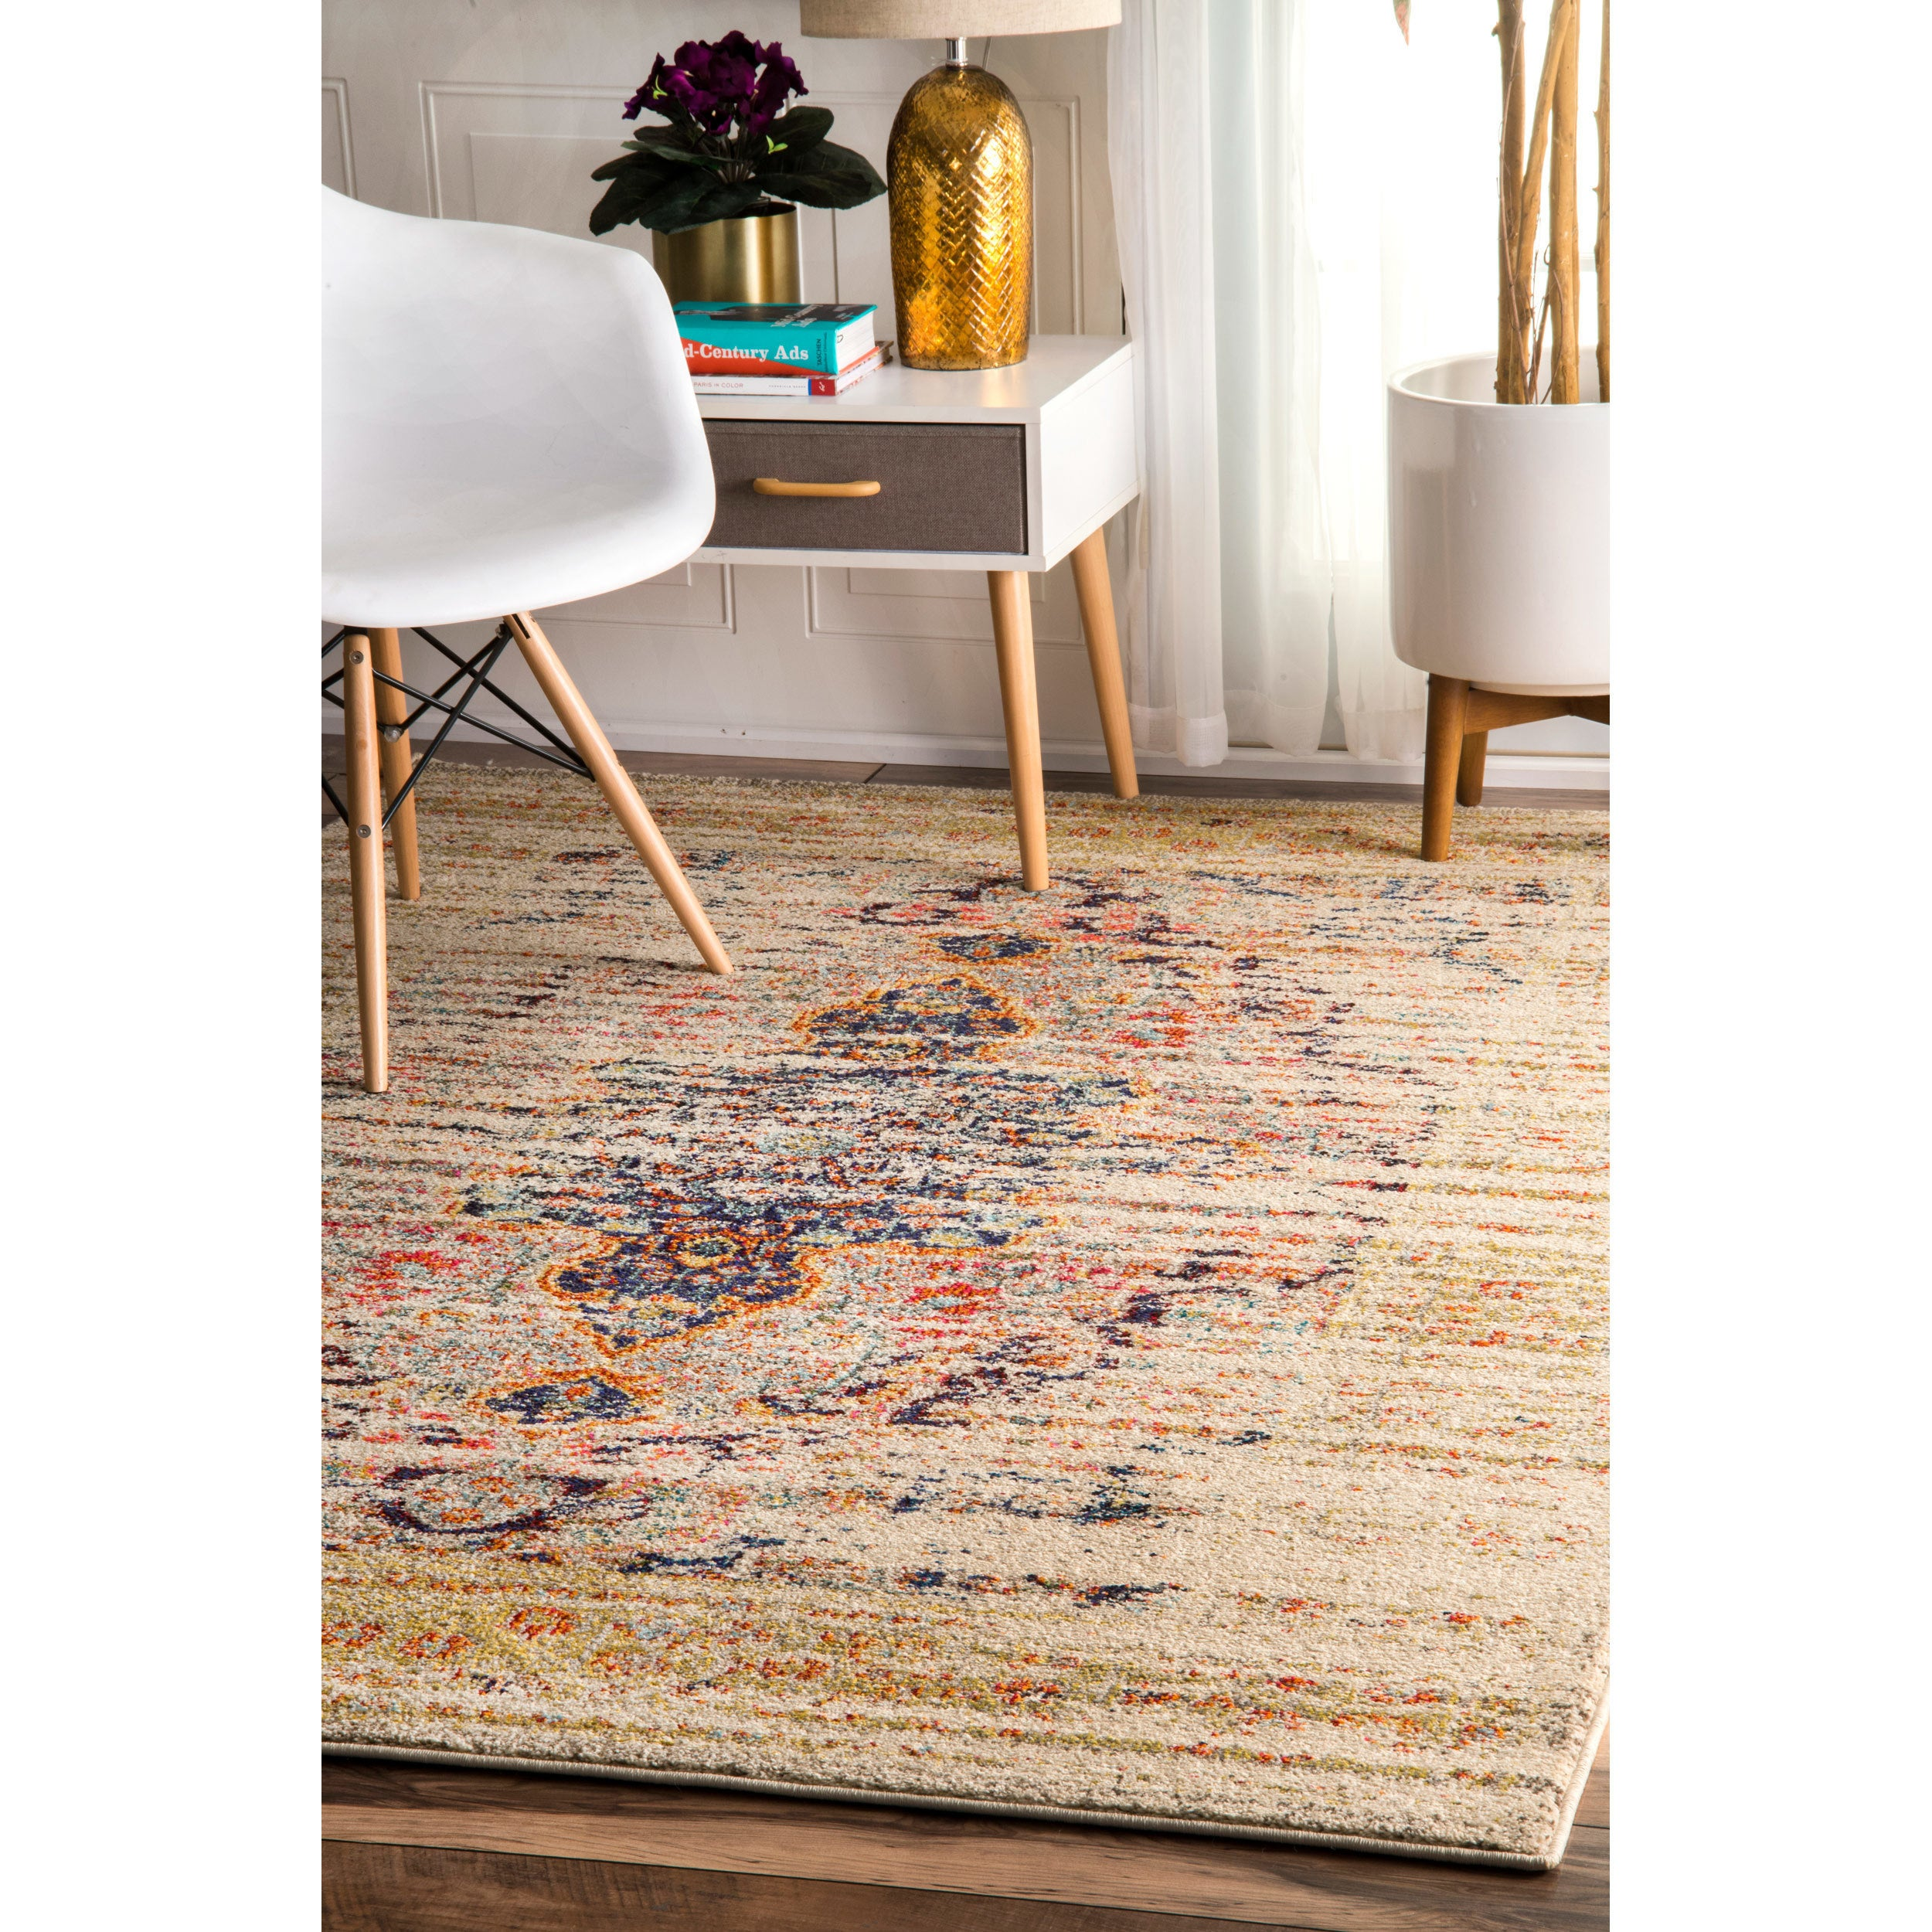 The Gray Barn Joad Distressed Traditional Vintage Medallion Sand/ Multicolored Indoor Rectangular Rug - 6'7 x 9'